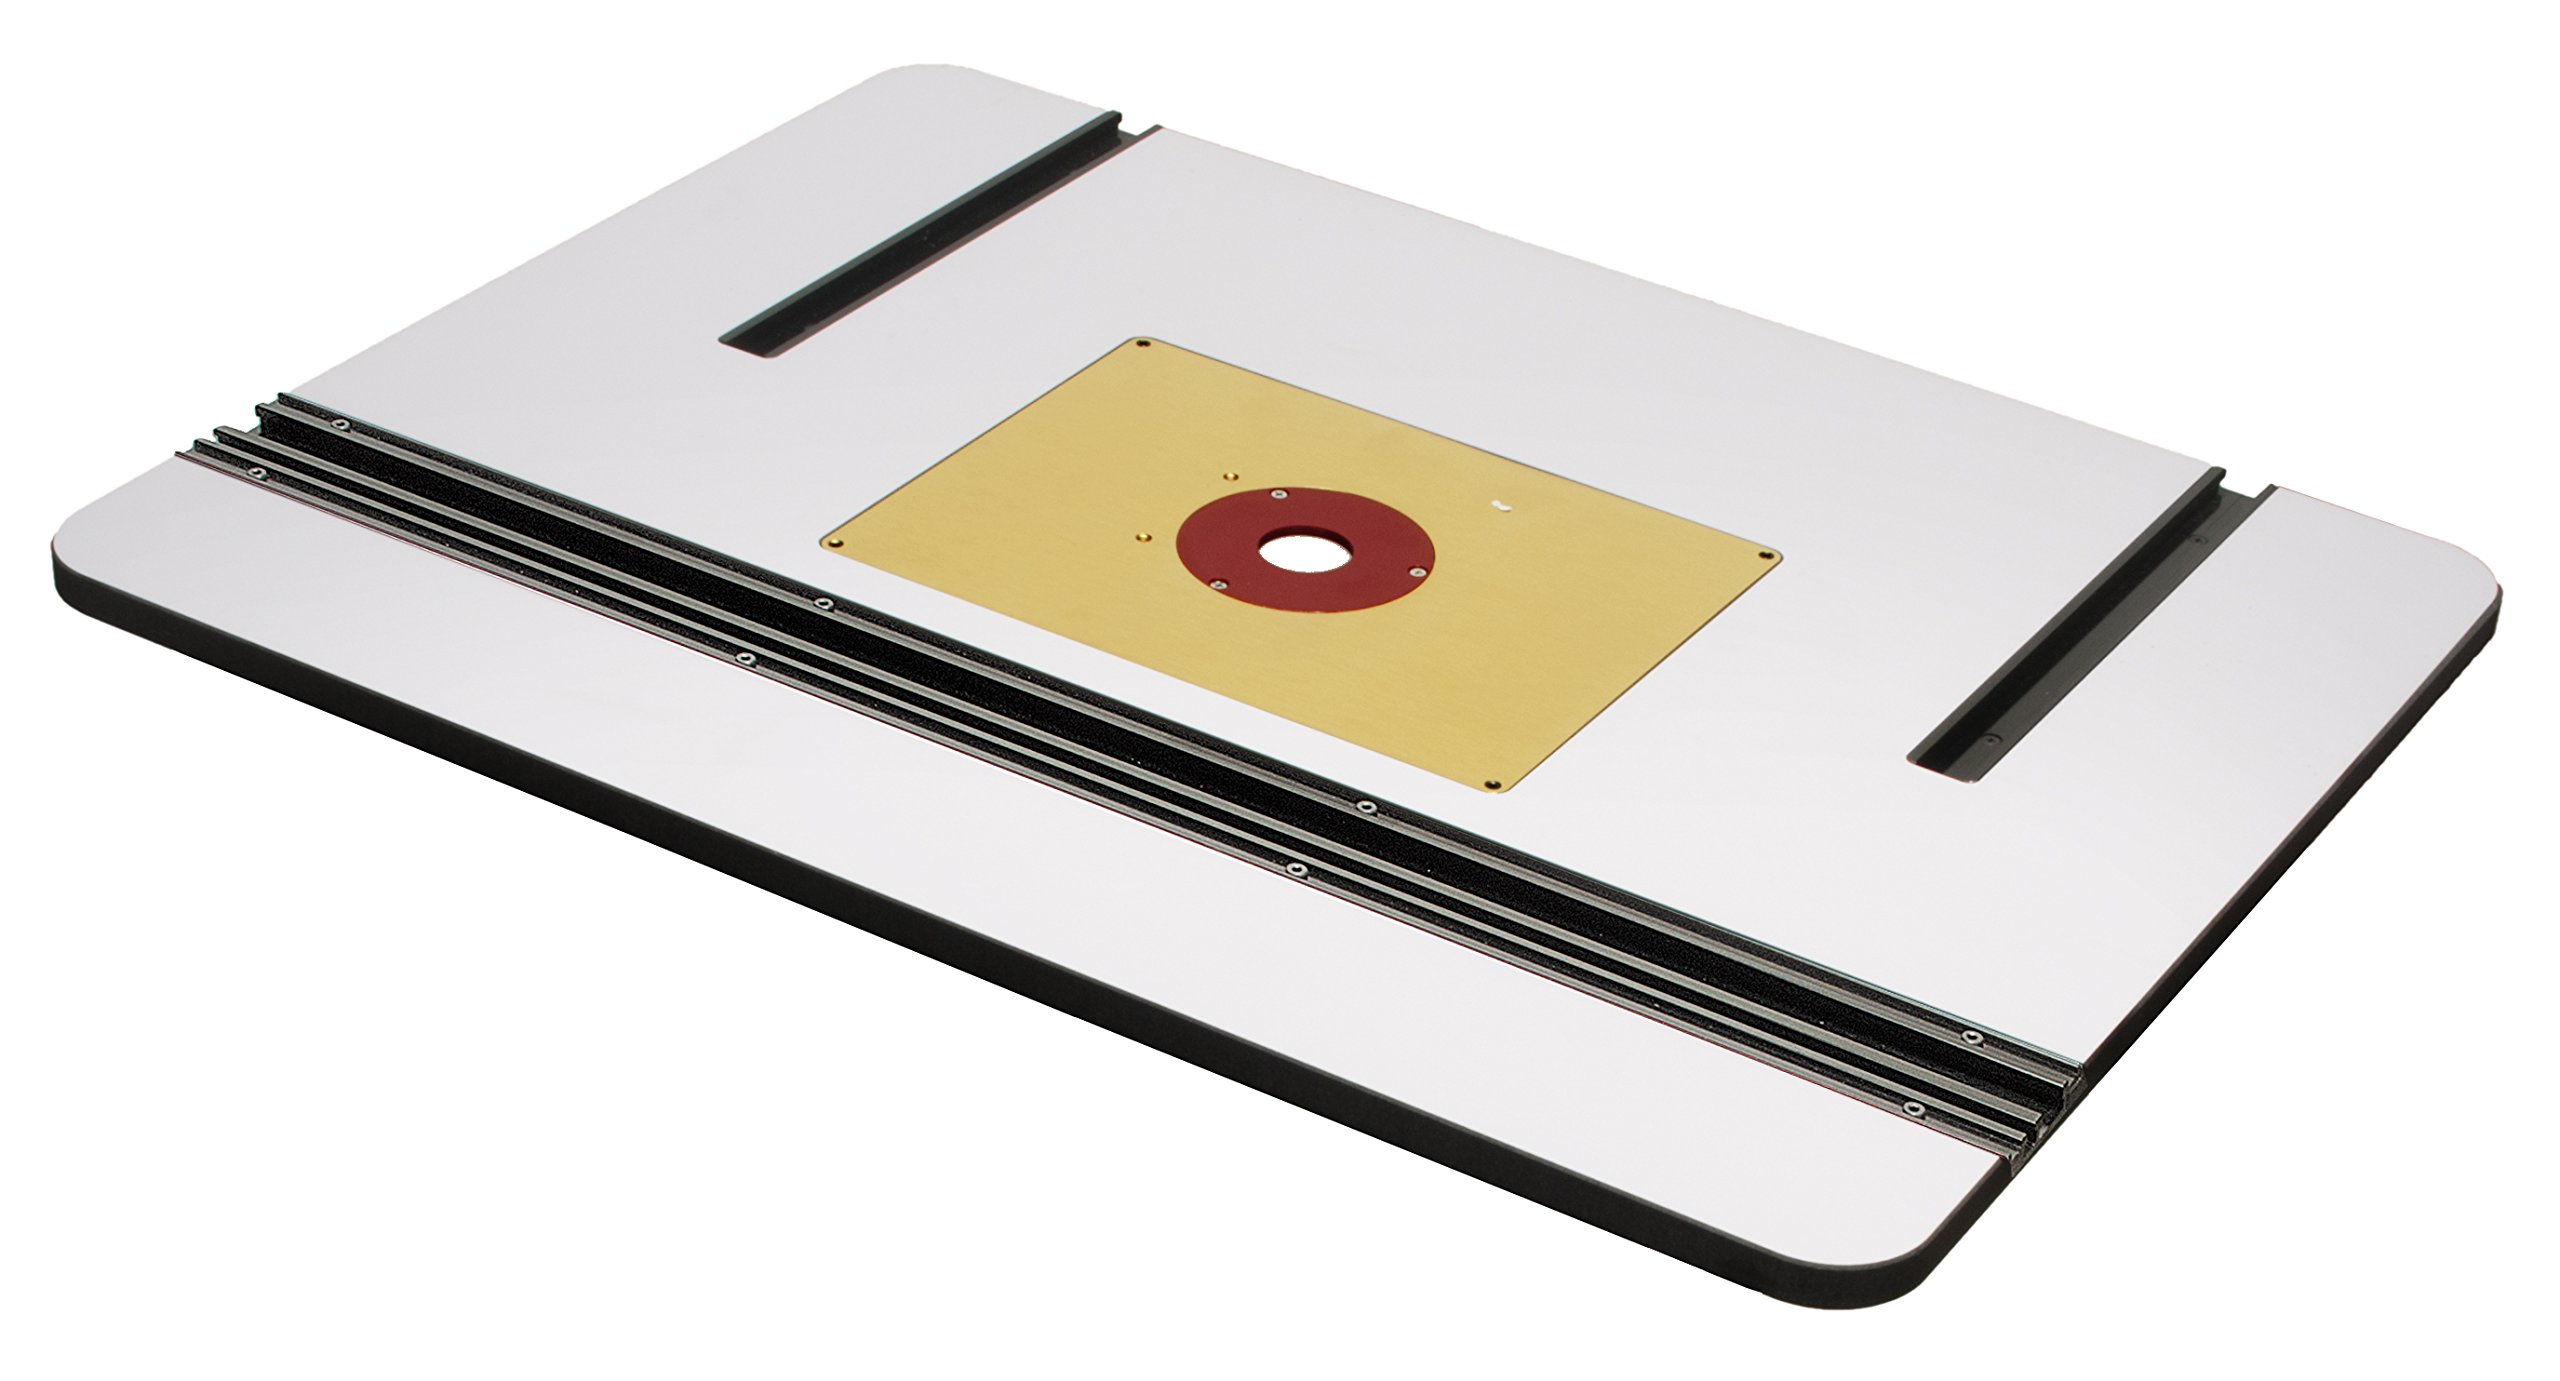 MLCS 9578 Phenolic Router Table Top and Aluminum Insert Plate